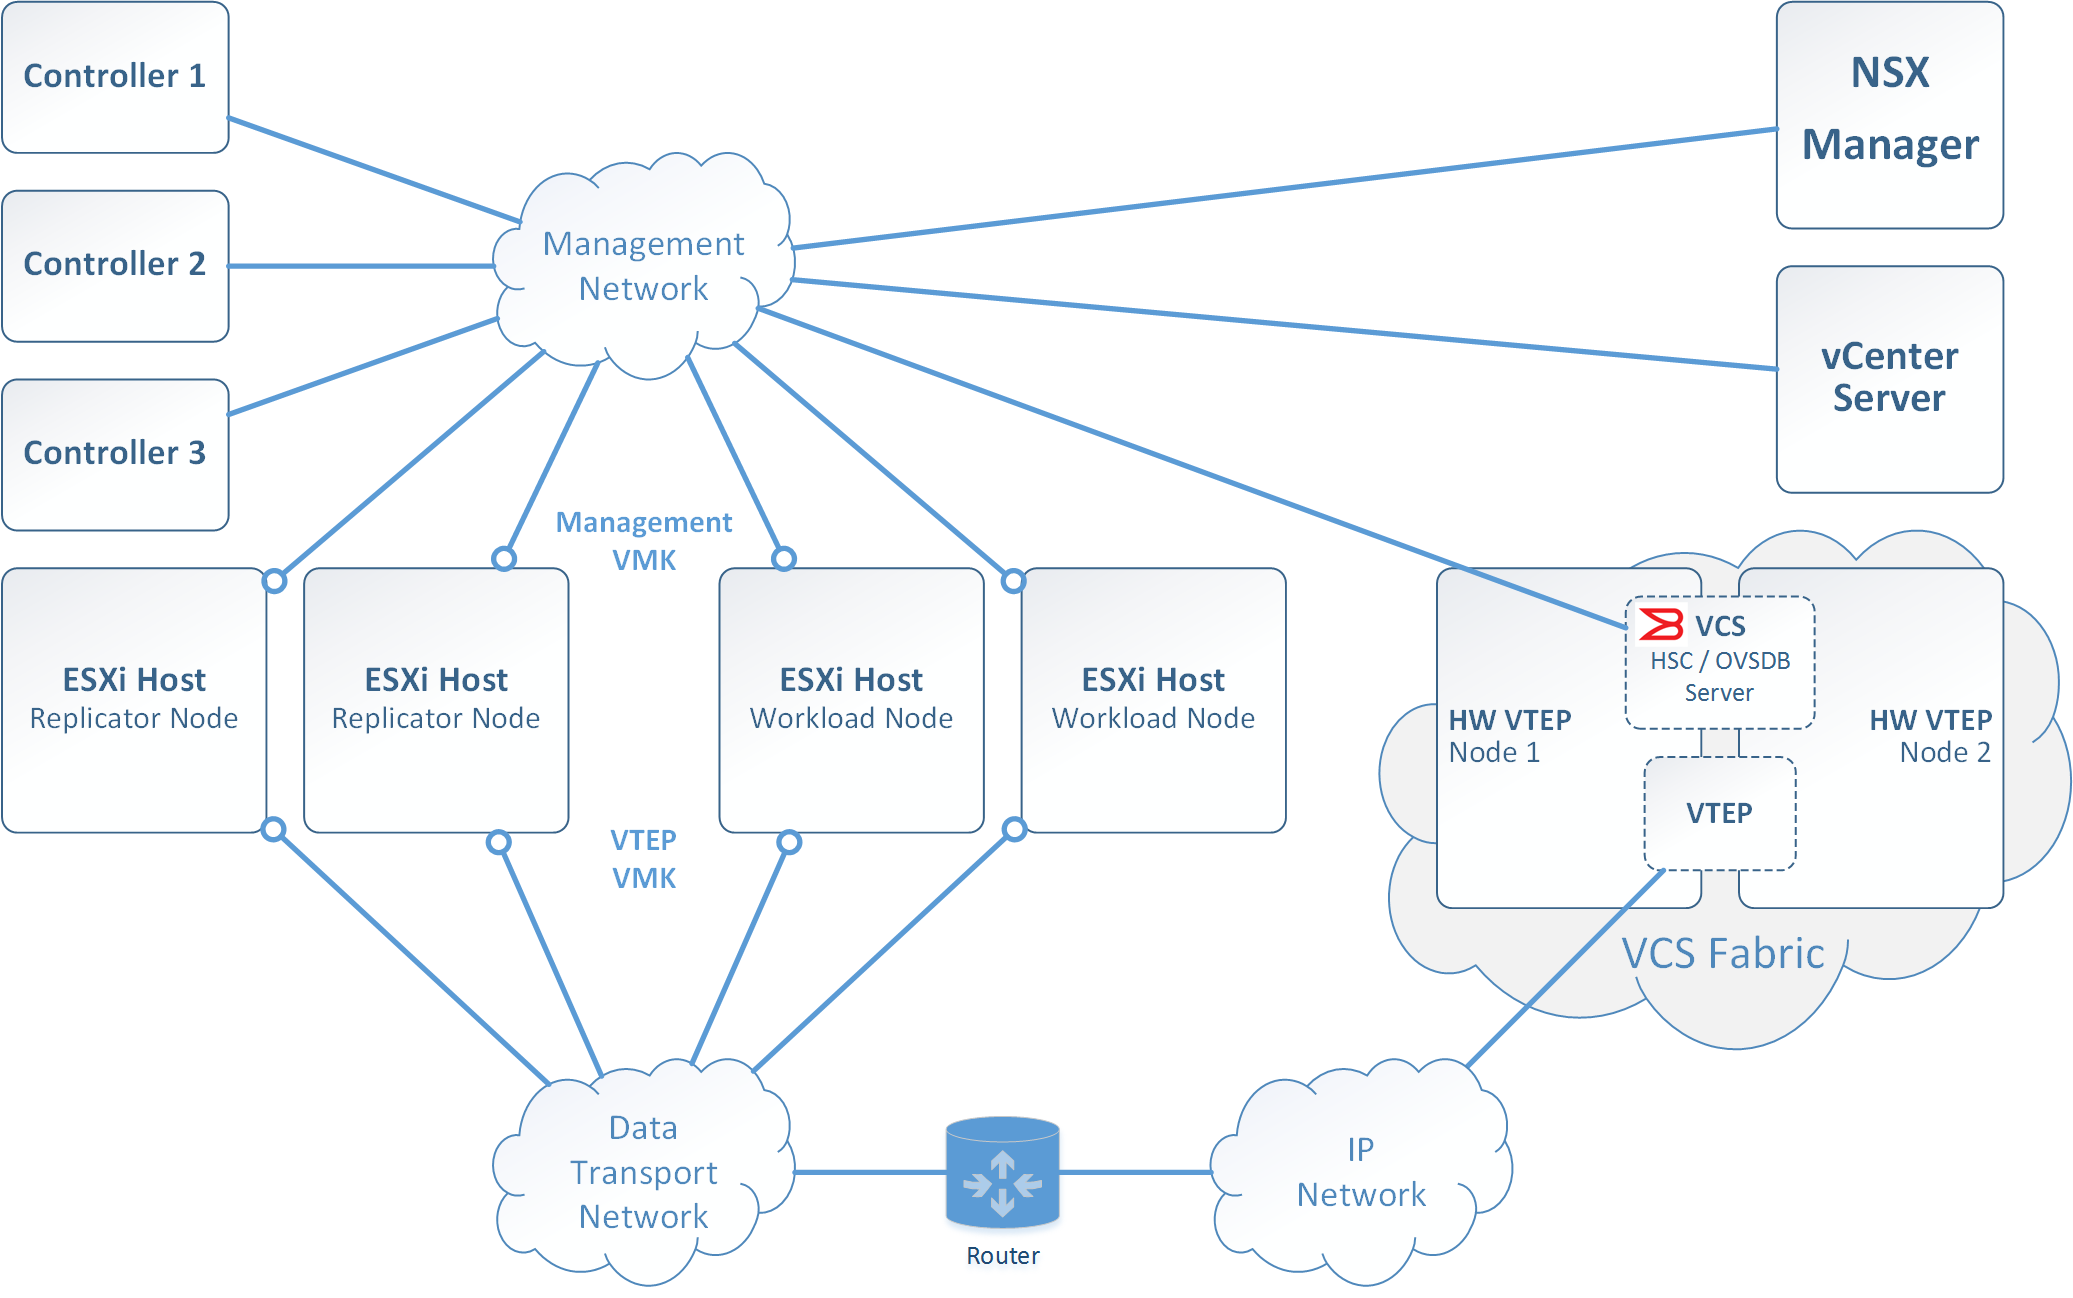 HW VTEP Solution - Required Network Connectivity